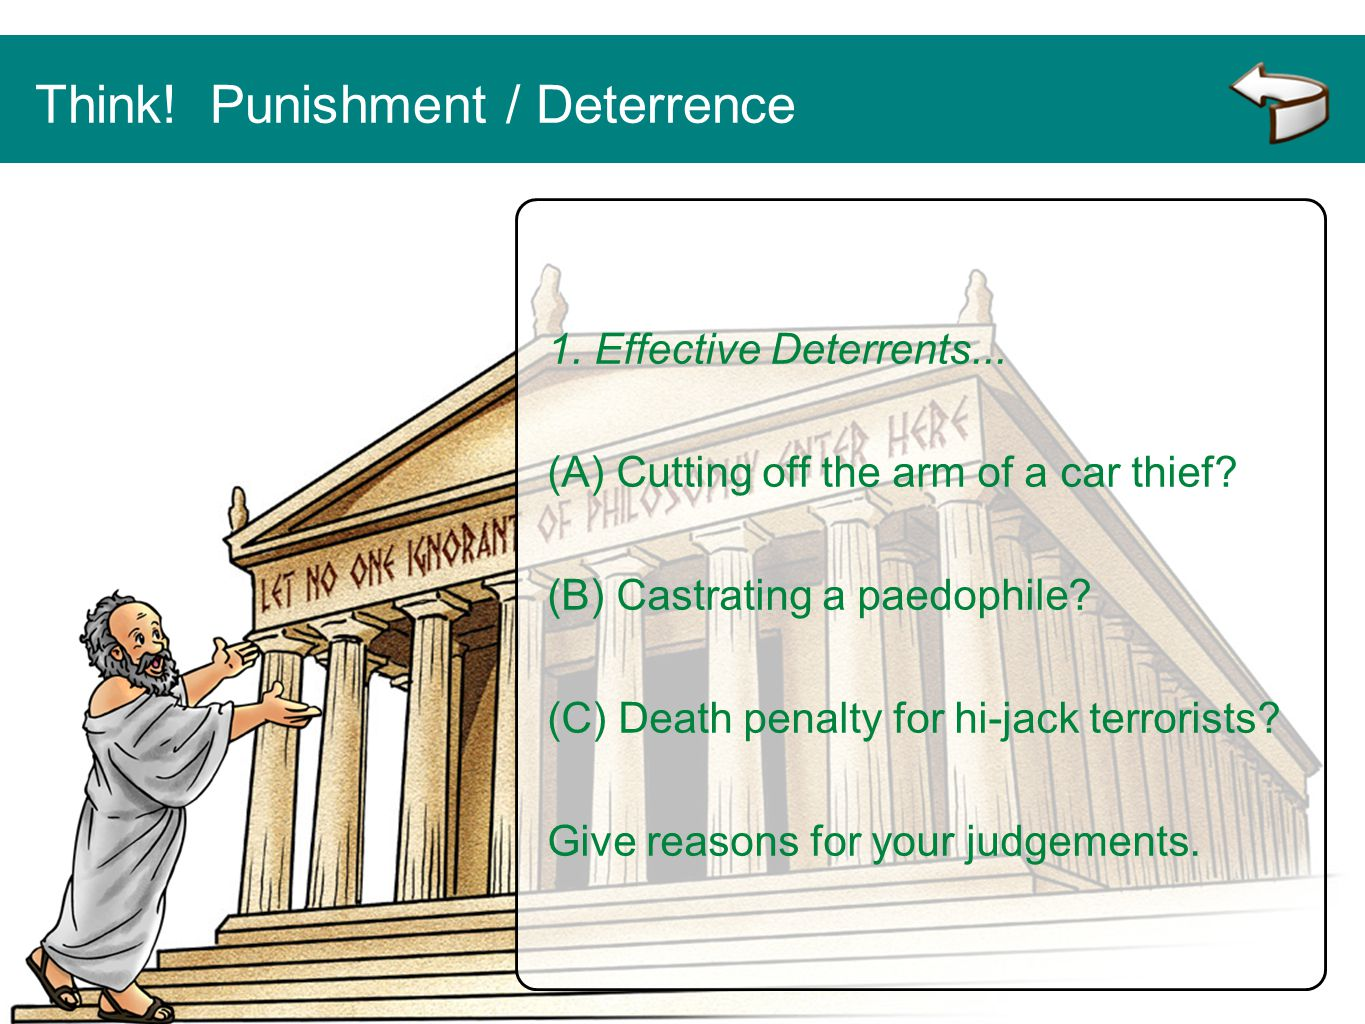 Think! Punishment / Deterrence